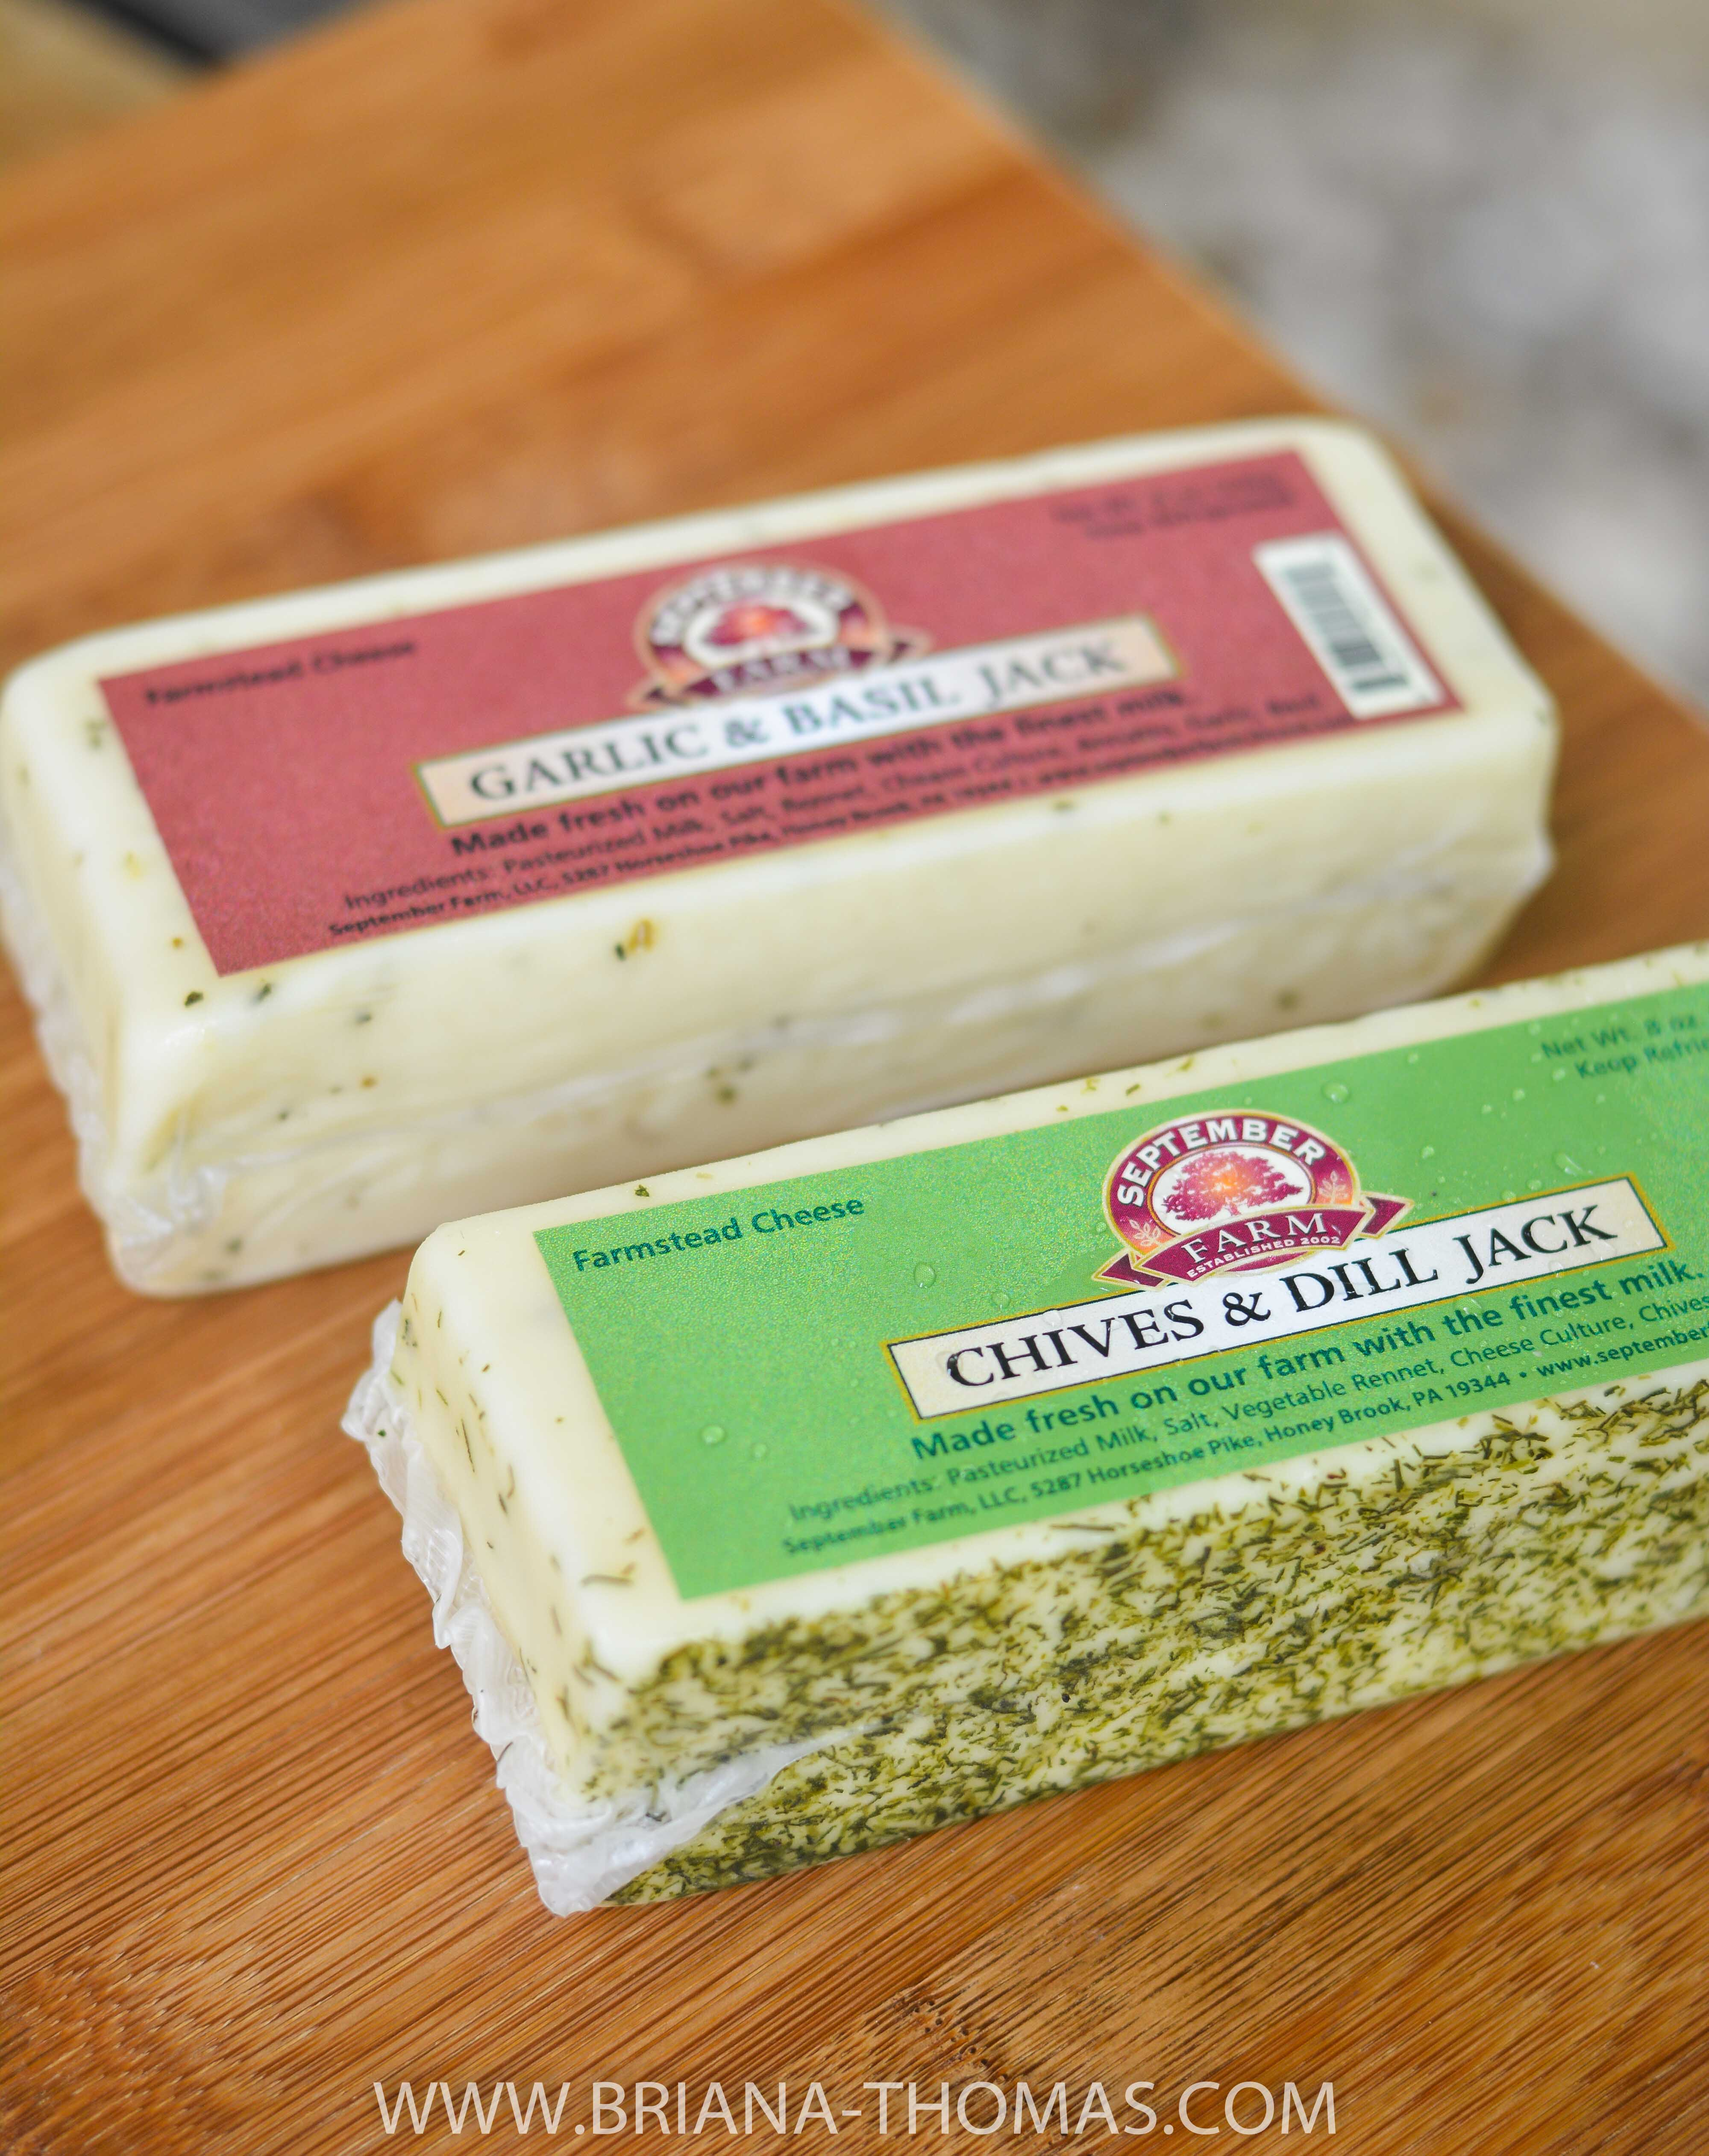 Jack cheeses from September Farm Cheese in Honey Brook, PA